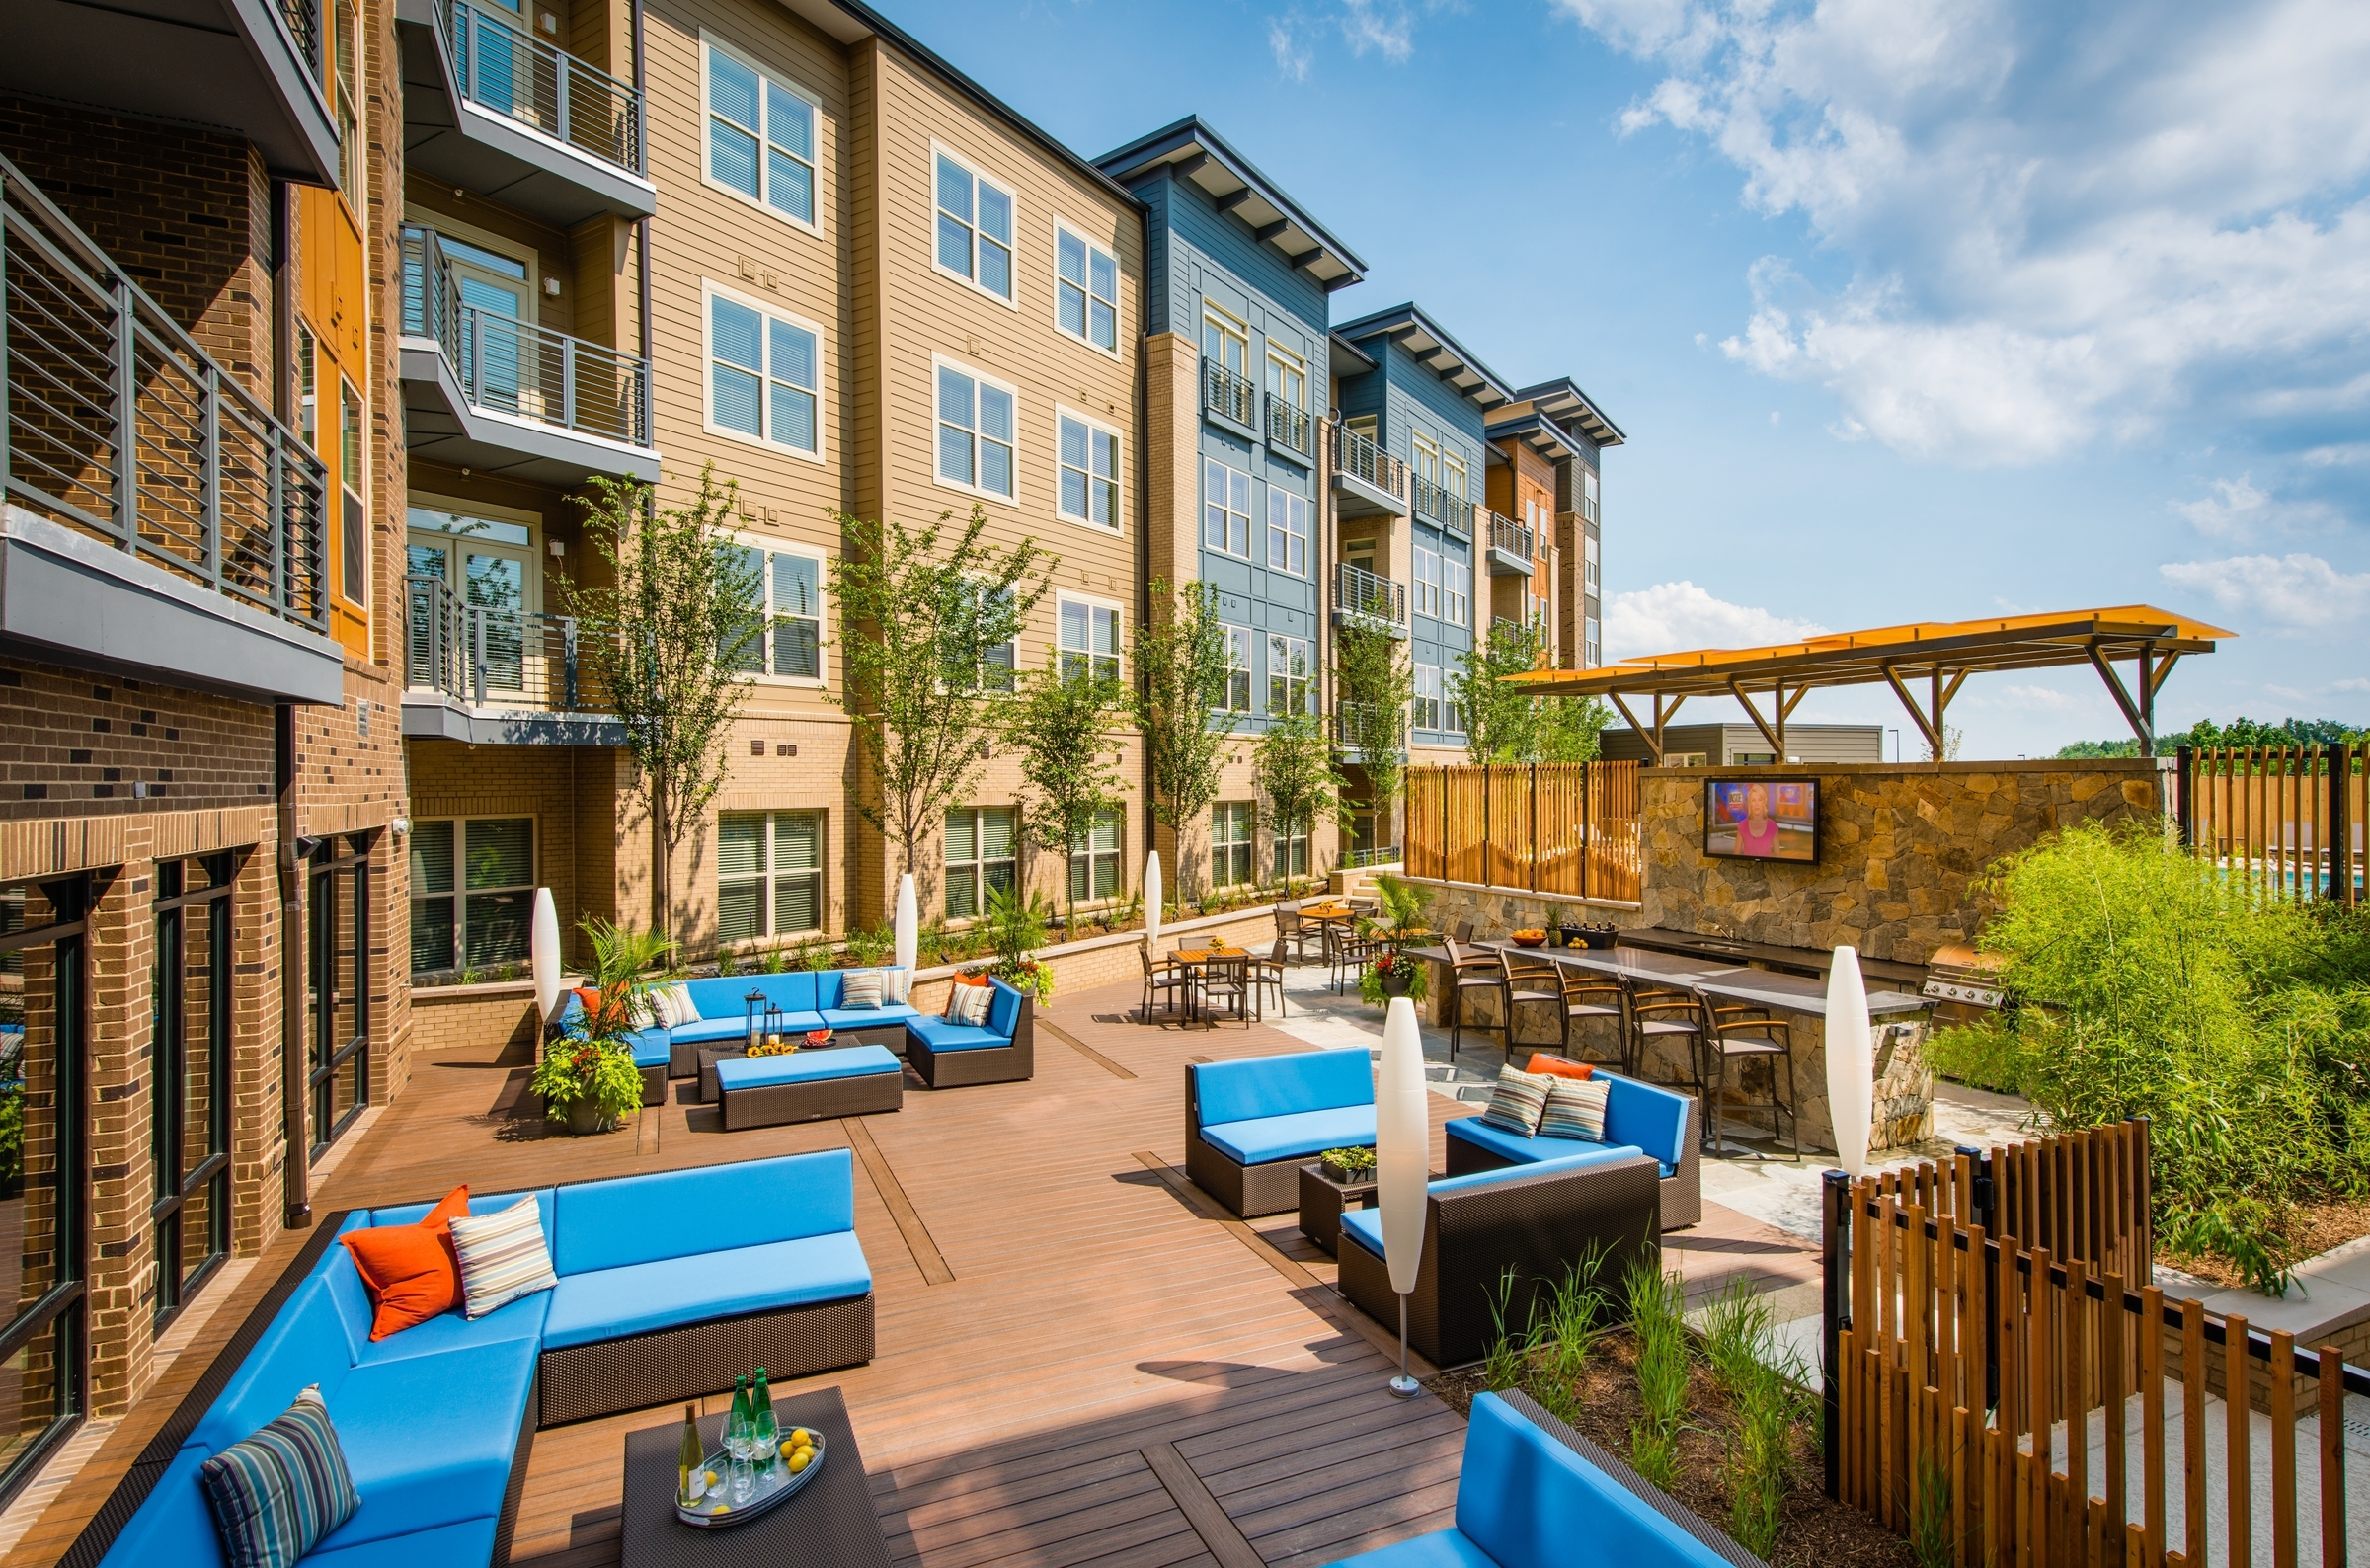 Gables Residential Completes Gables Upper Rock | Business Wire